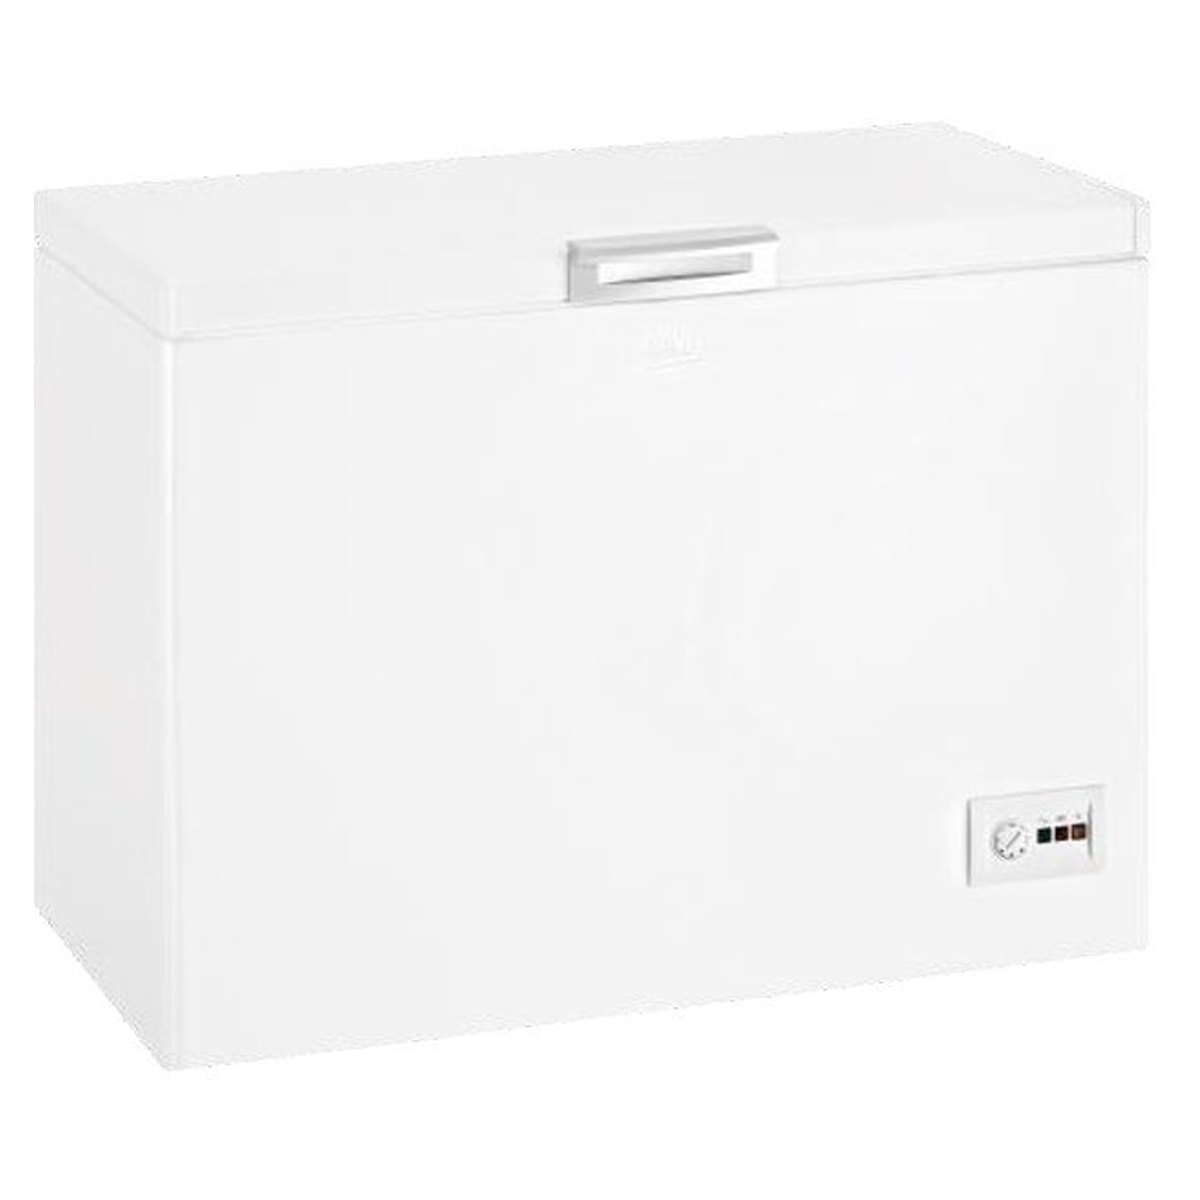 Beko HSA32520 315L Chest Freezer 117422